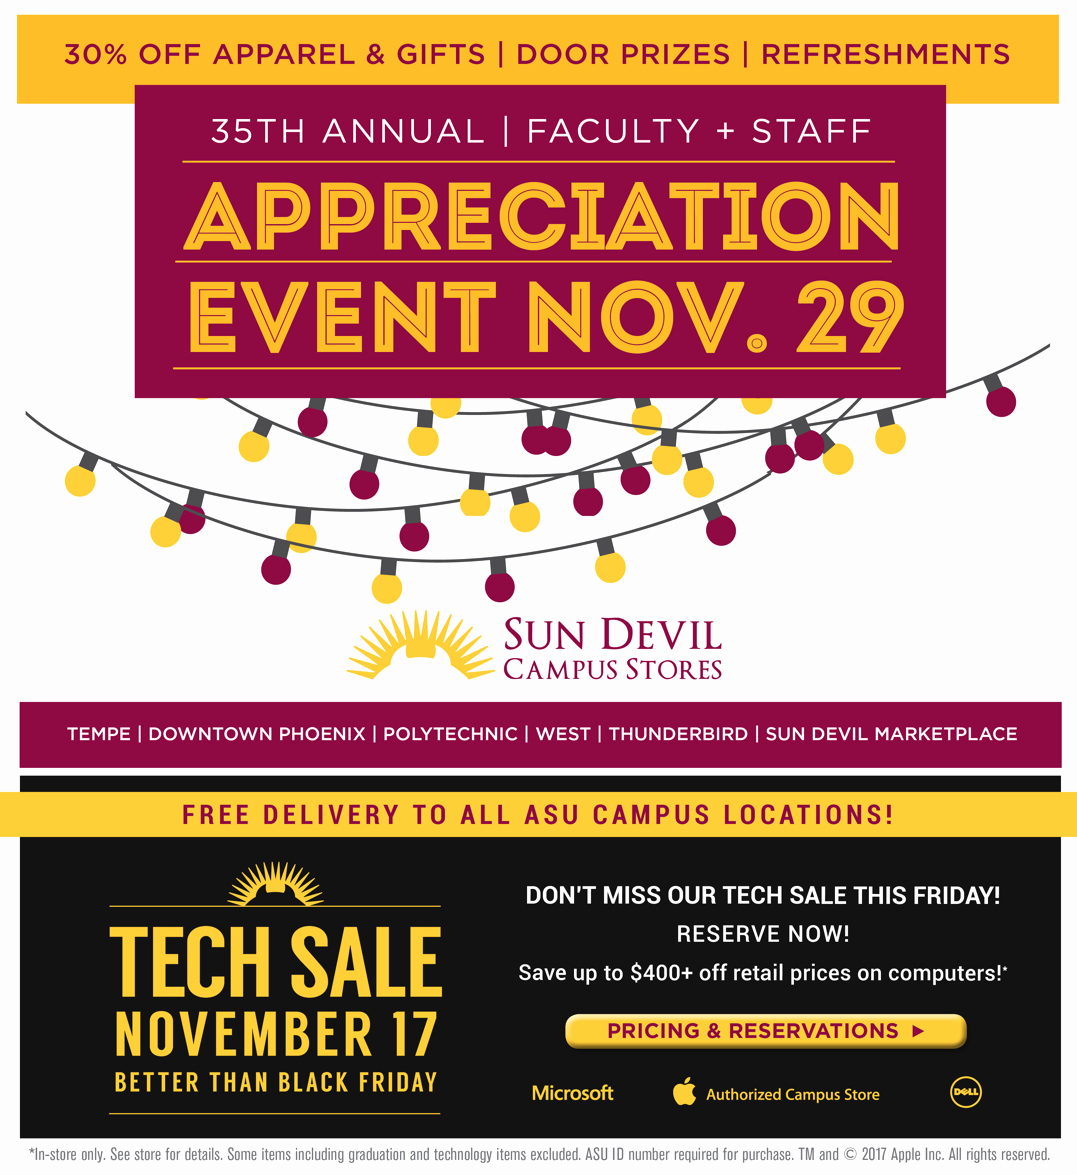 Employee Appreciation Flyer Templates Beautiful 35th Annual Faculty and Staff Customer Appreciation Sale